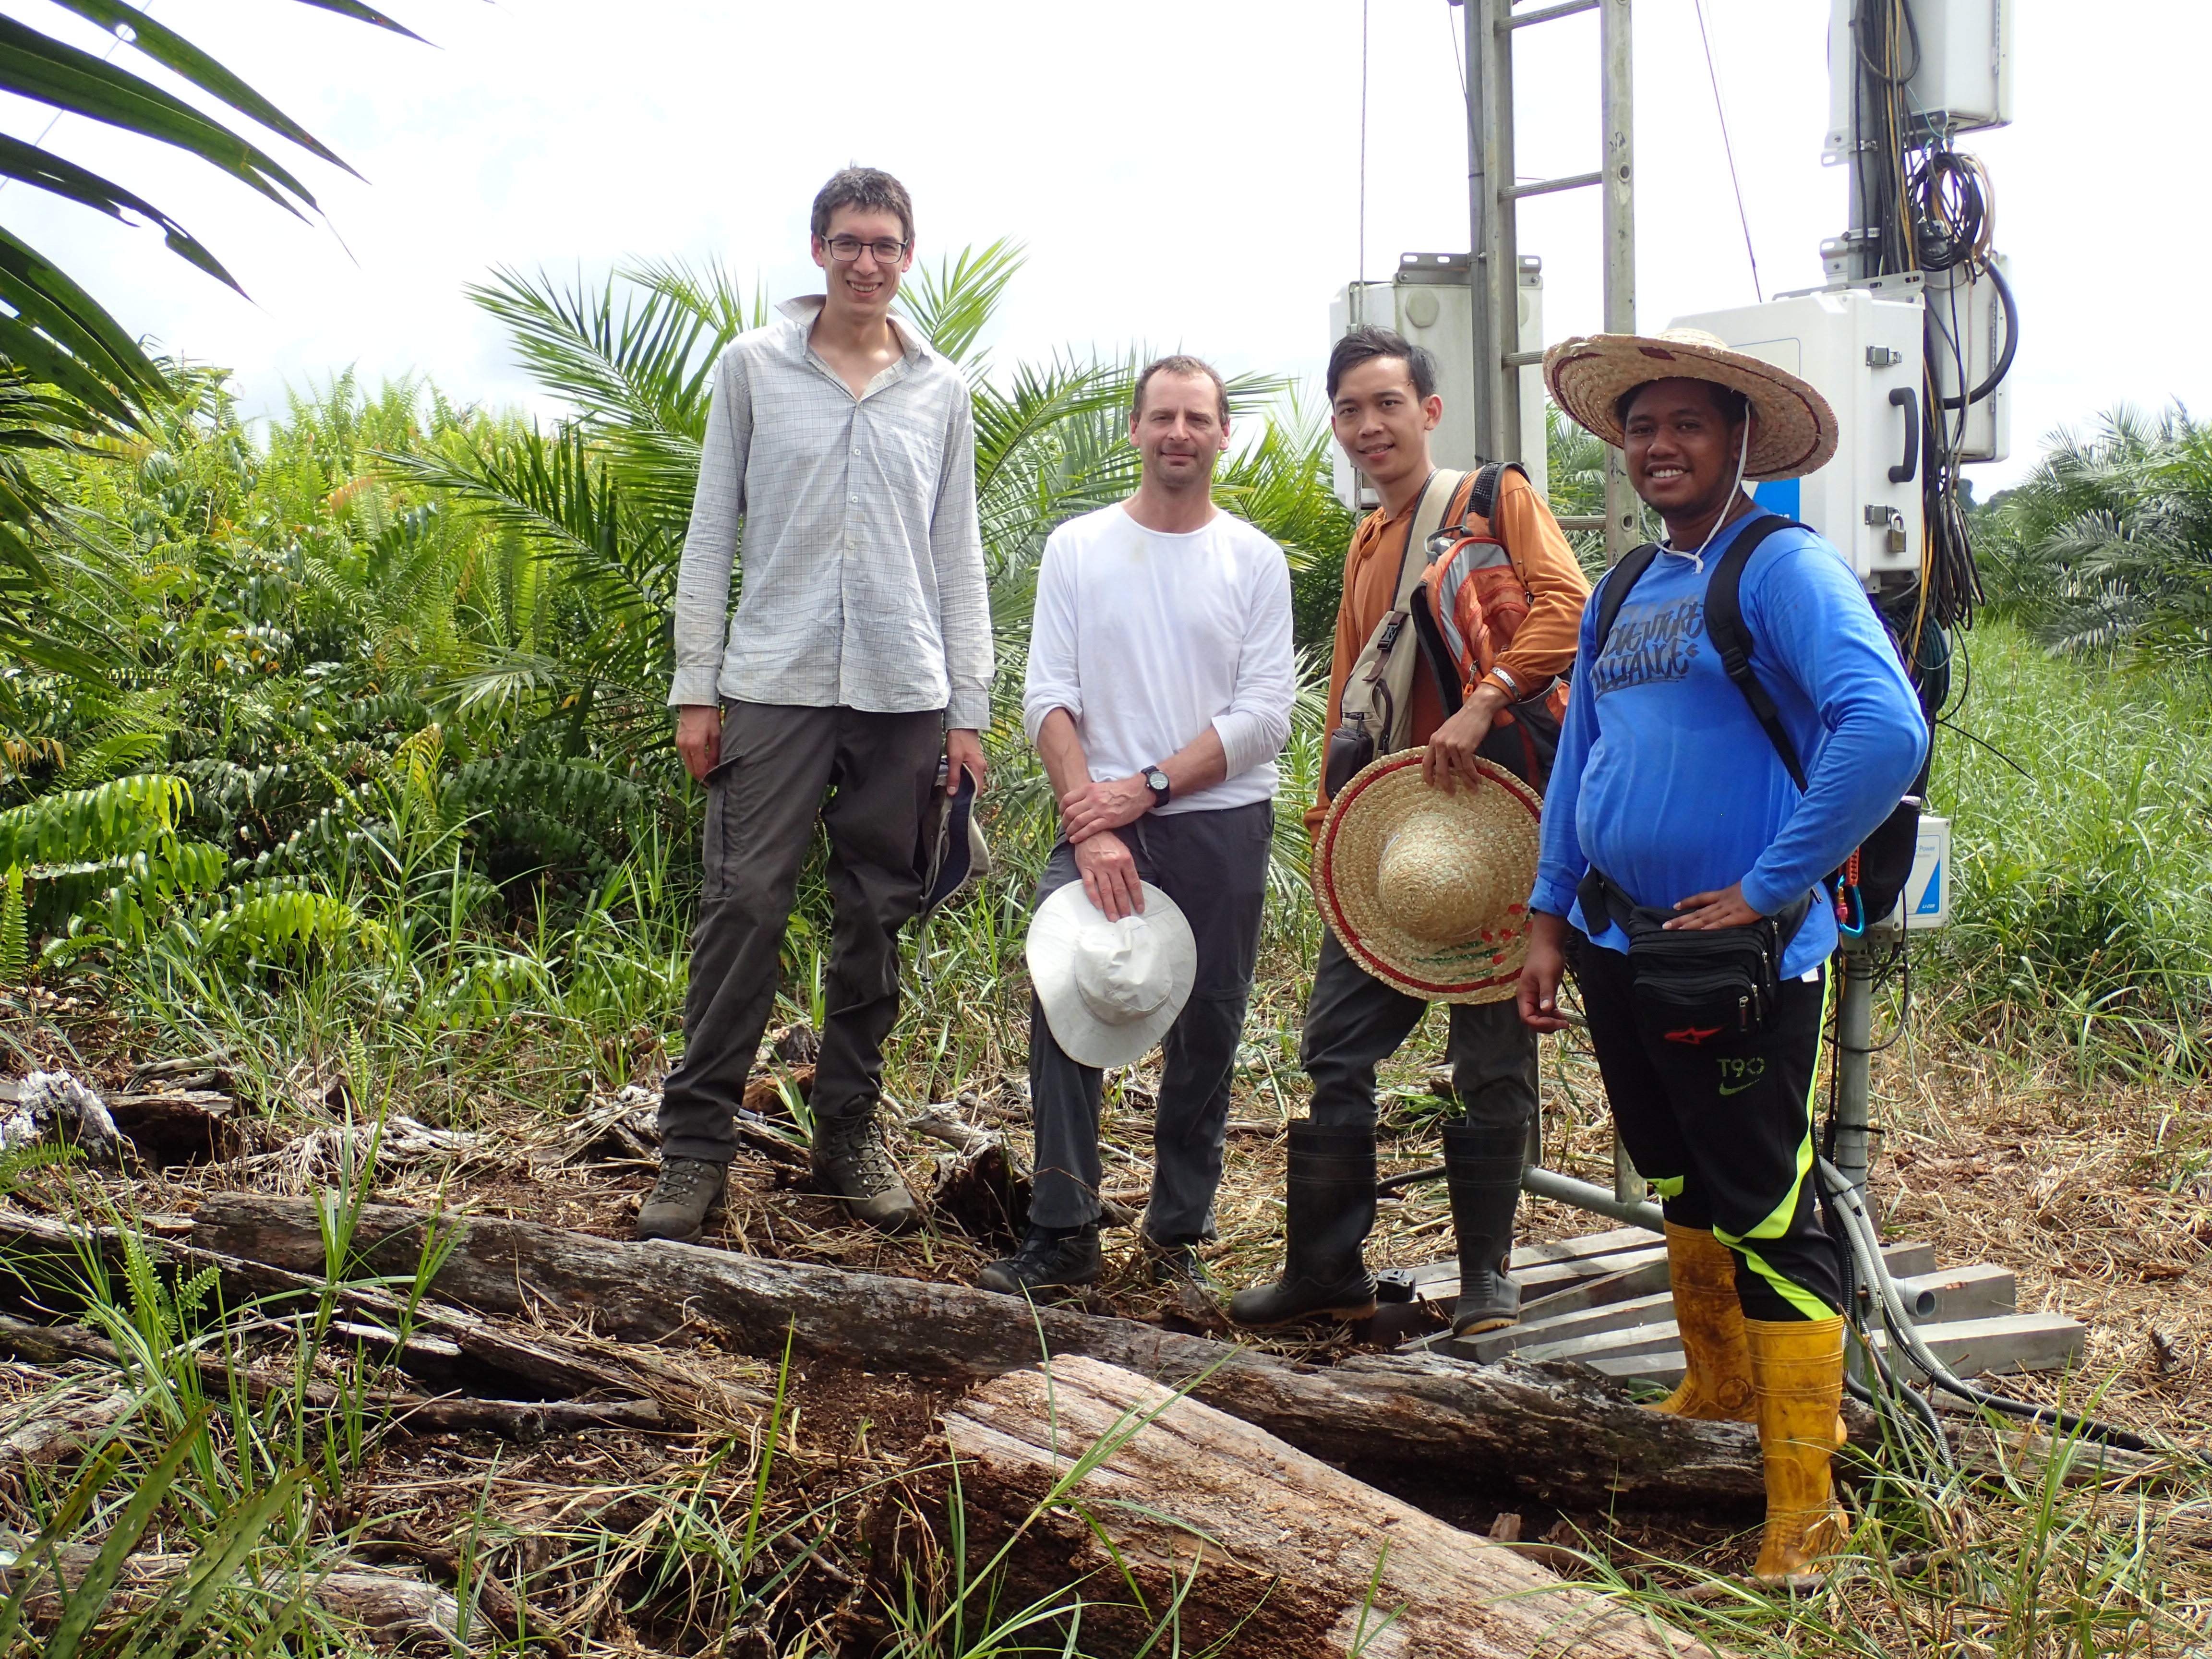 Tim Hill, Jon McCalmont, Ham and Jai at the recently converted oil palm site